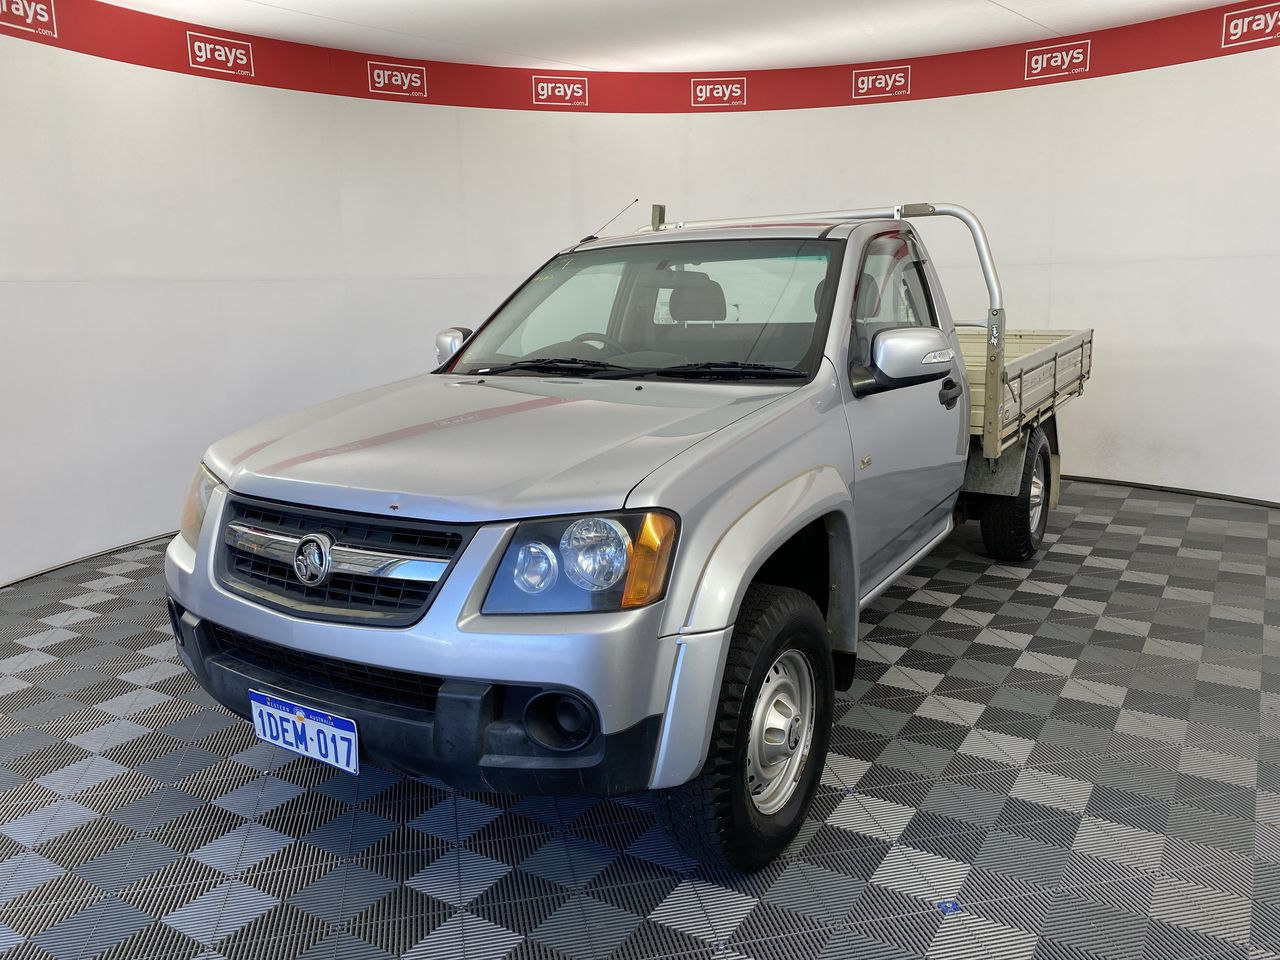 2009 Holden Colorado 4X2 LX 3.6 V6 RC Manual Cab Chassis